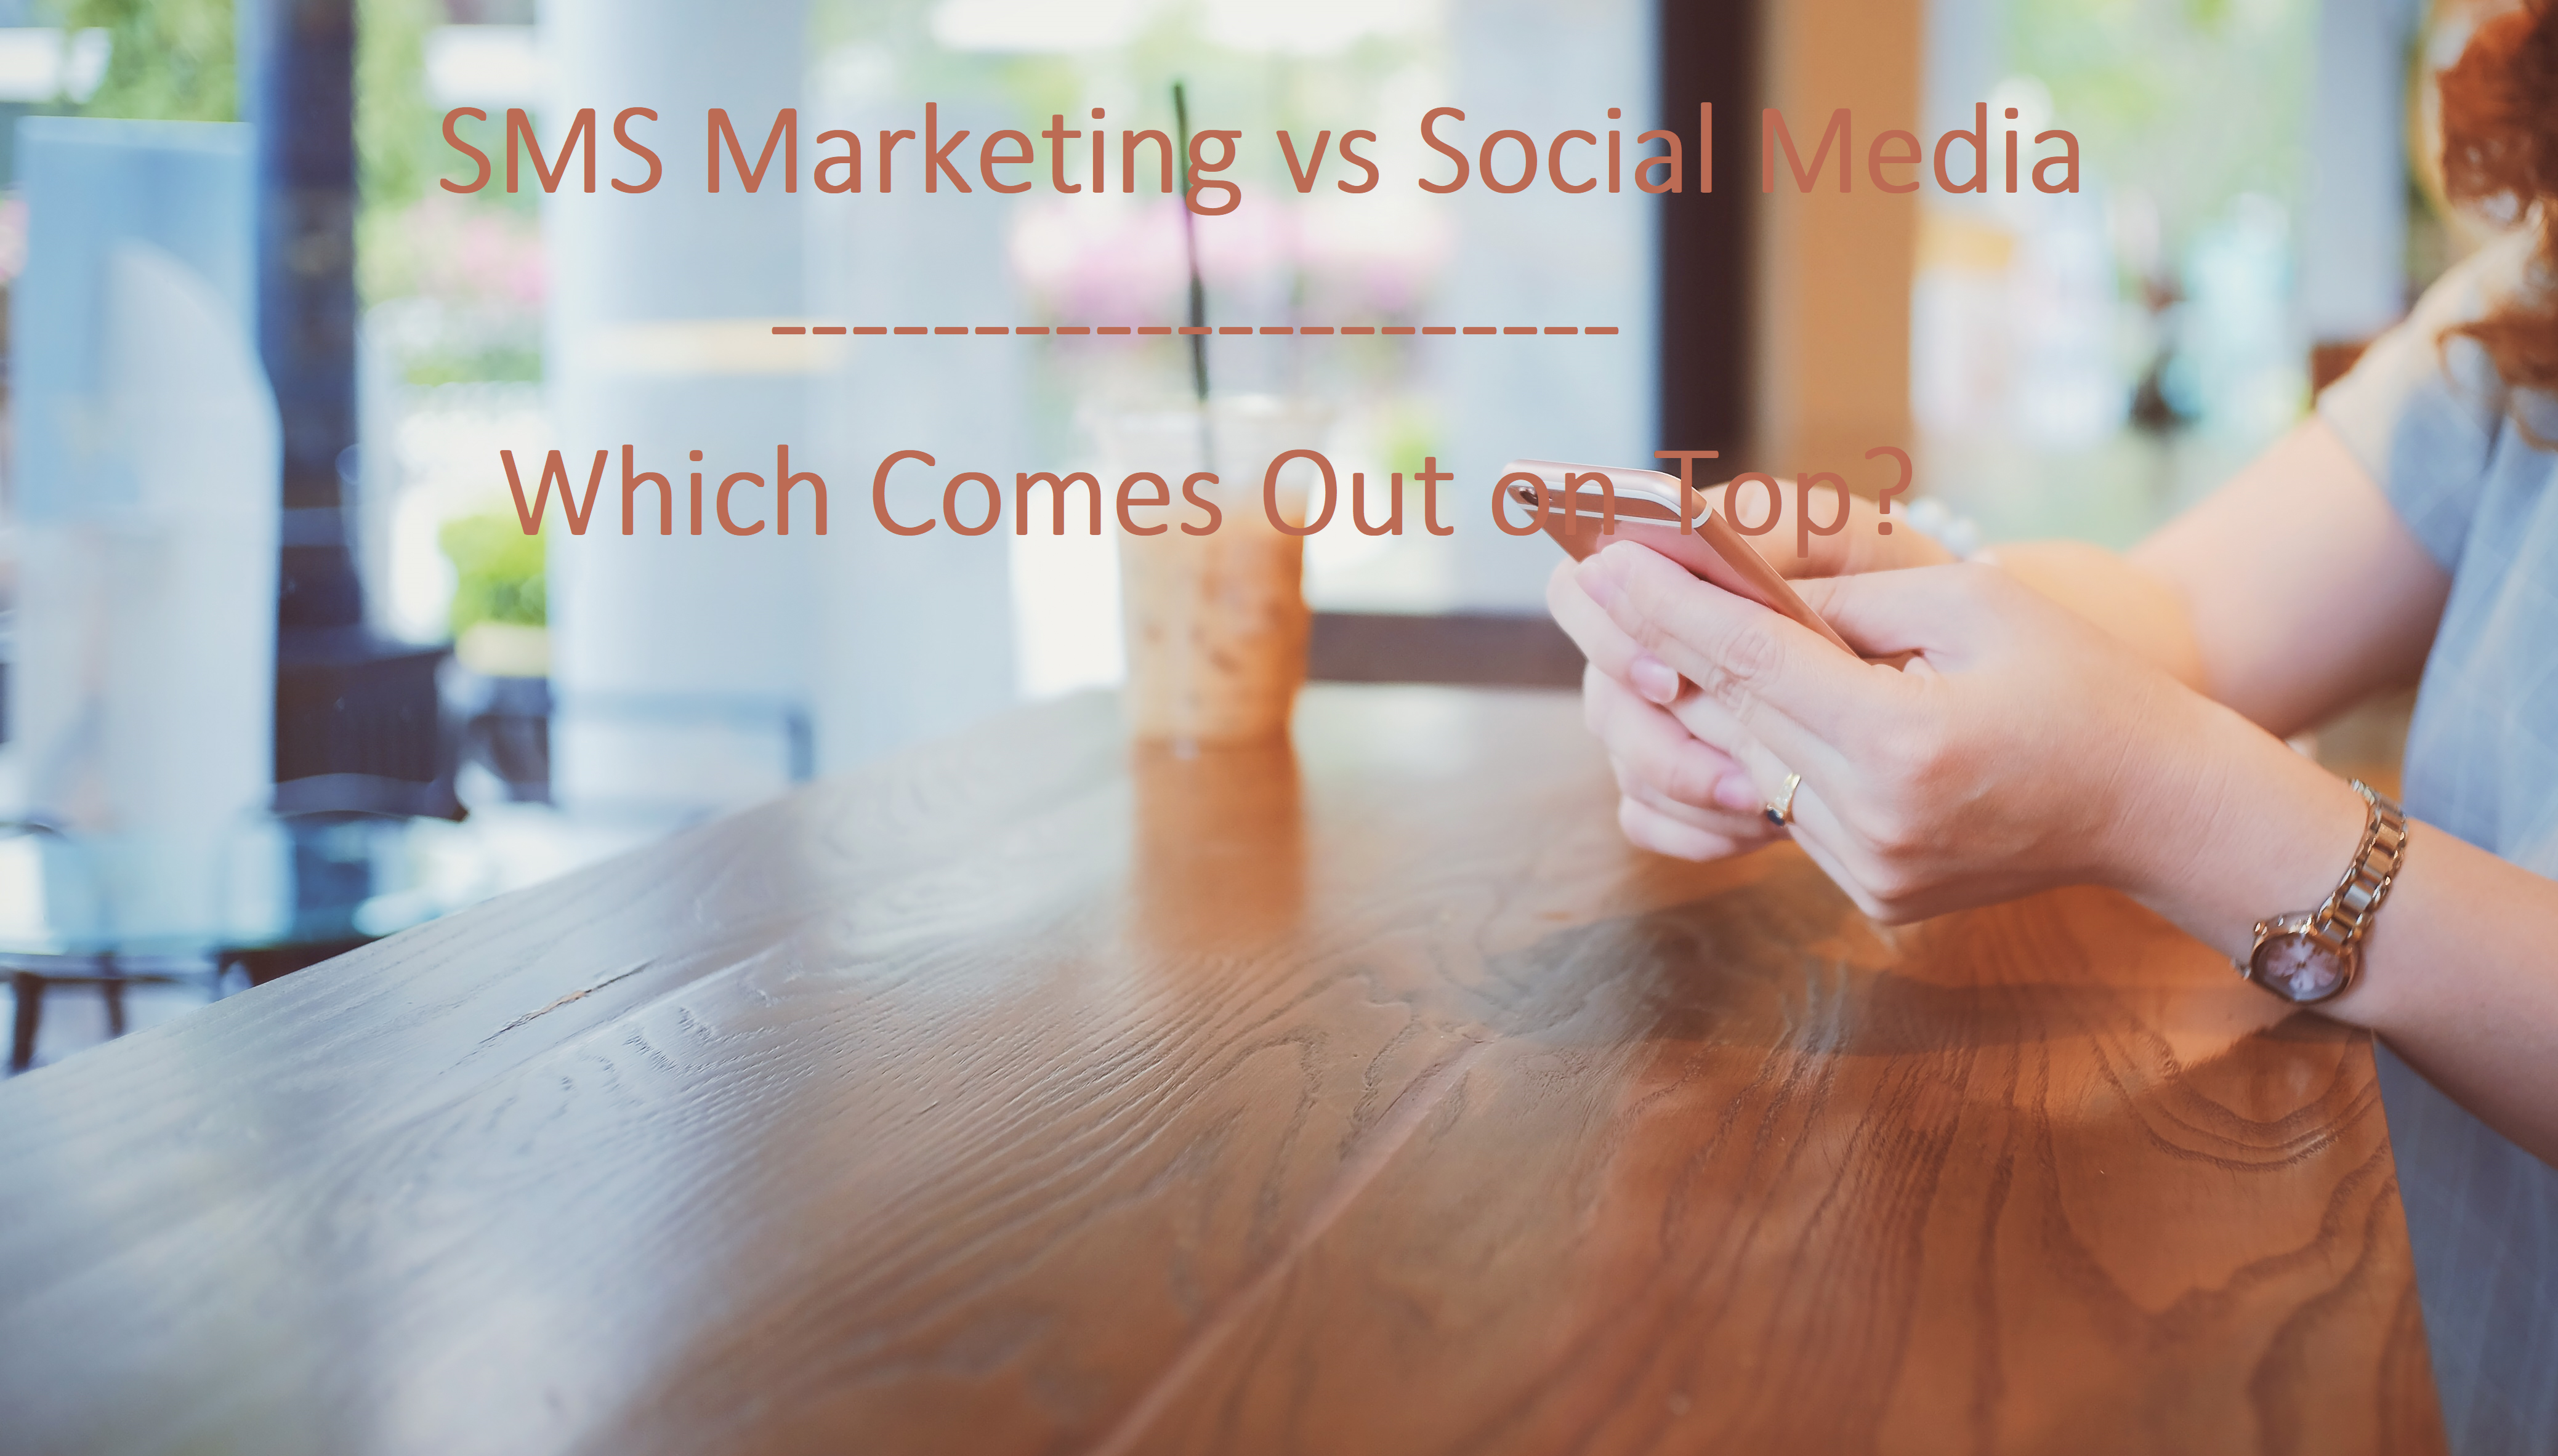 SMS Marketing vs Social Media. Which Comes Out on Top?